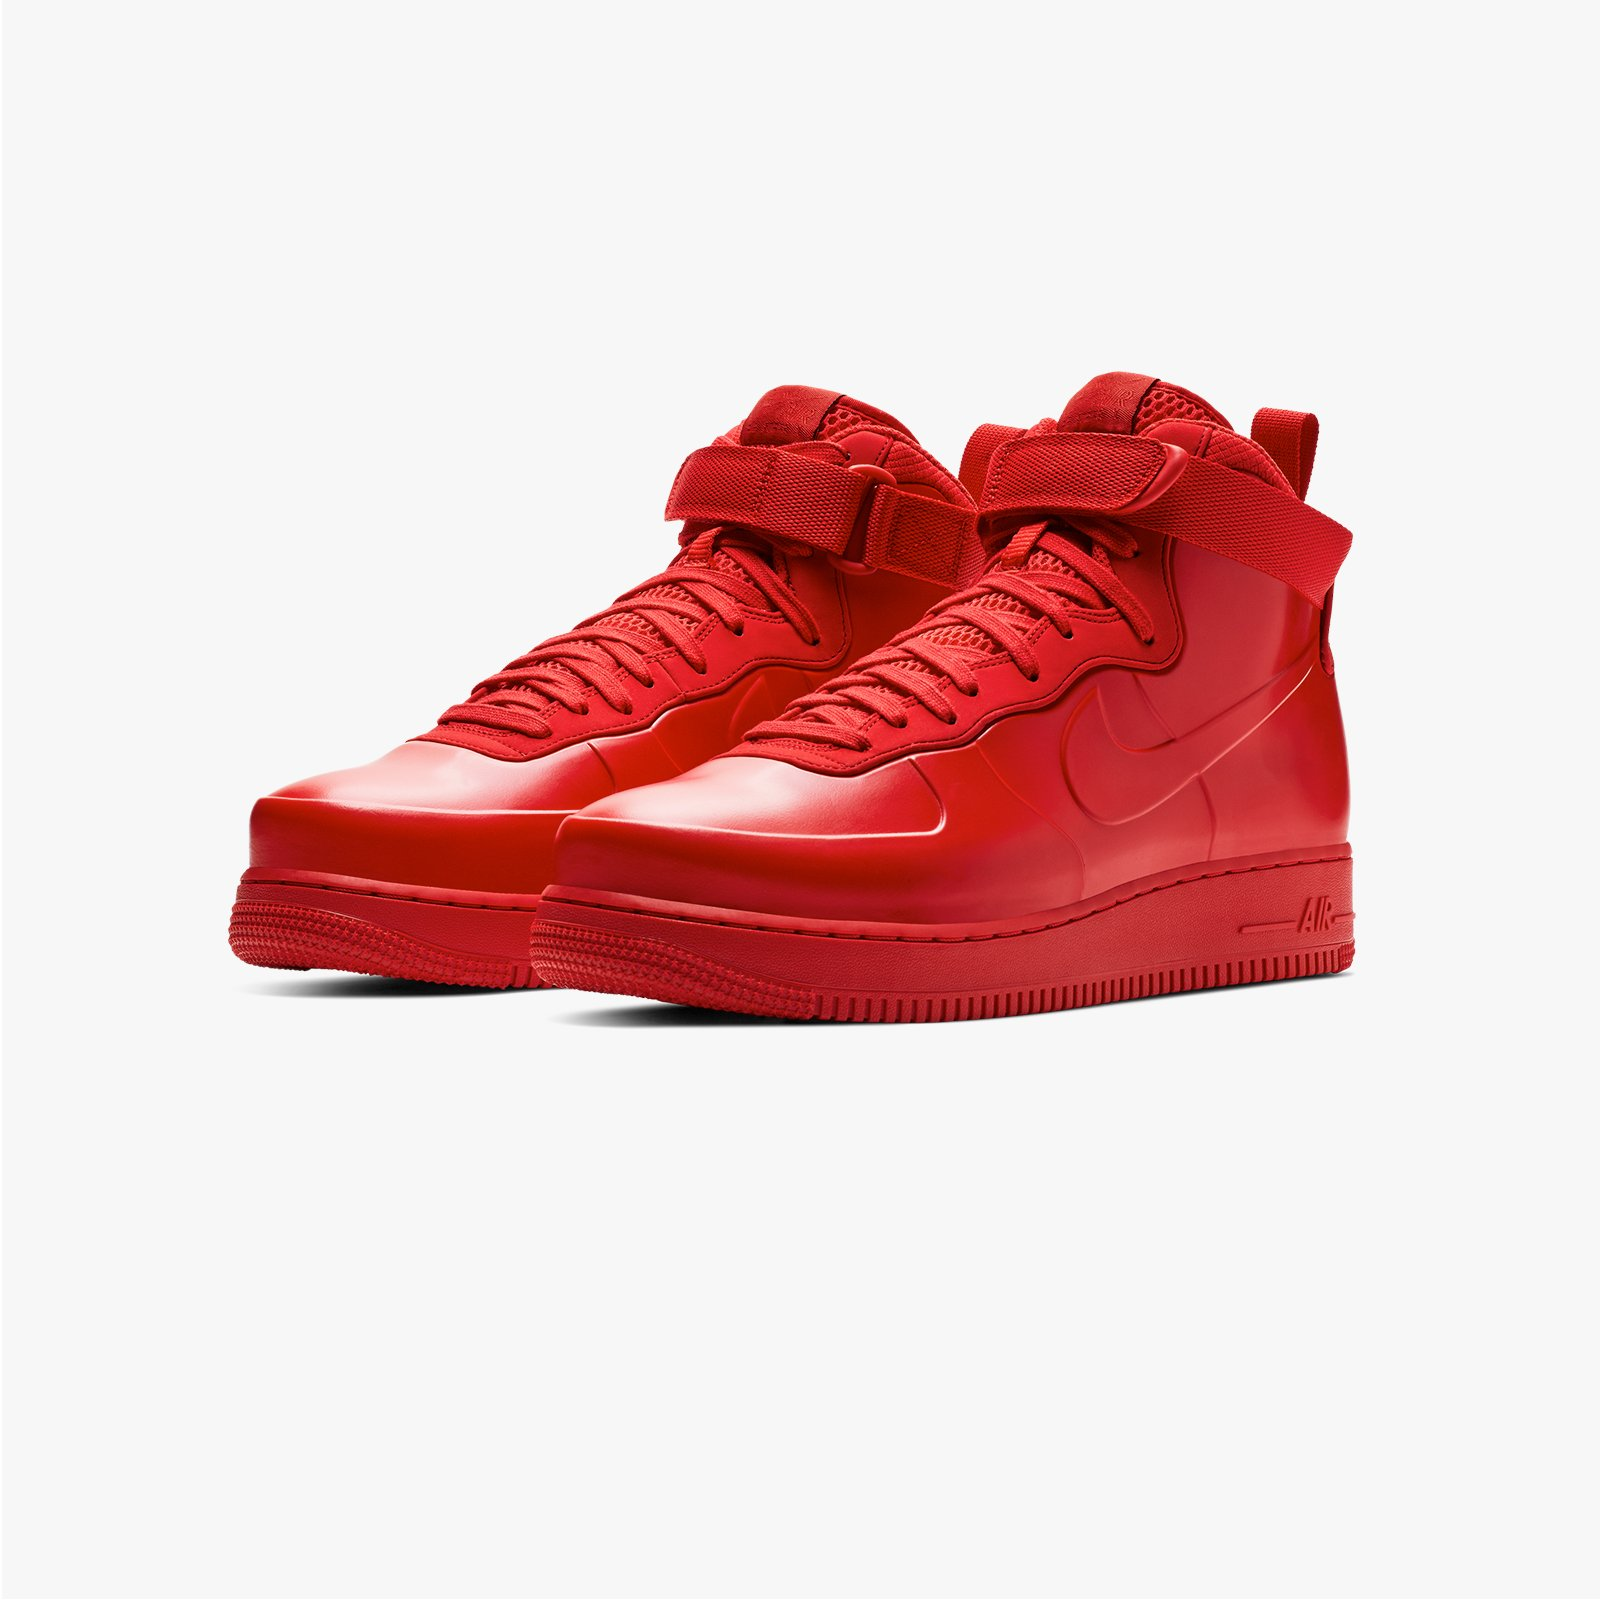 Nike Air Force 1 Foamposite Cup Bv1172 600